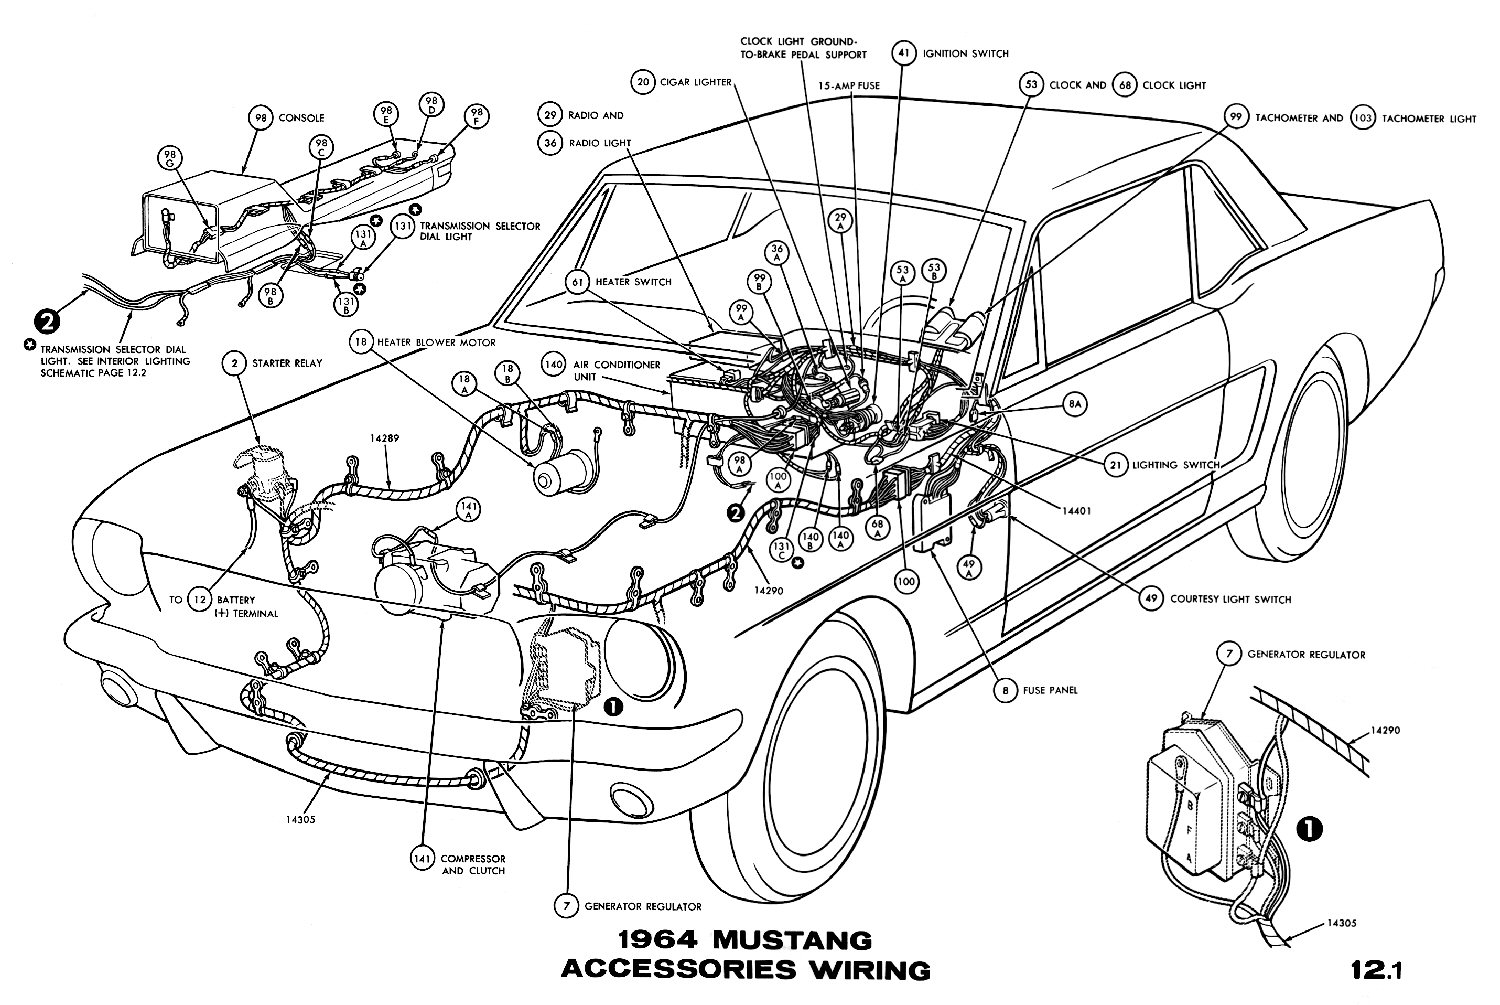 Diagram Likewise Mustang Under Dash Light Locations